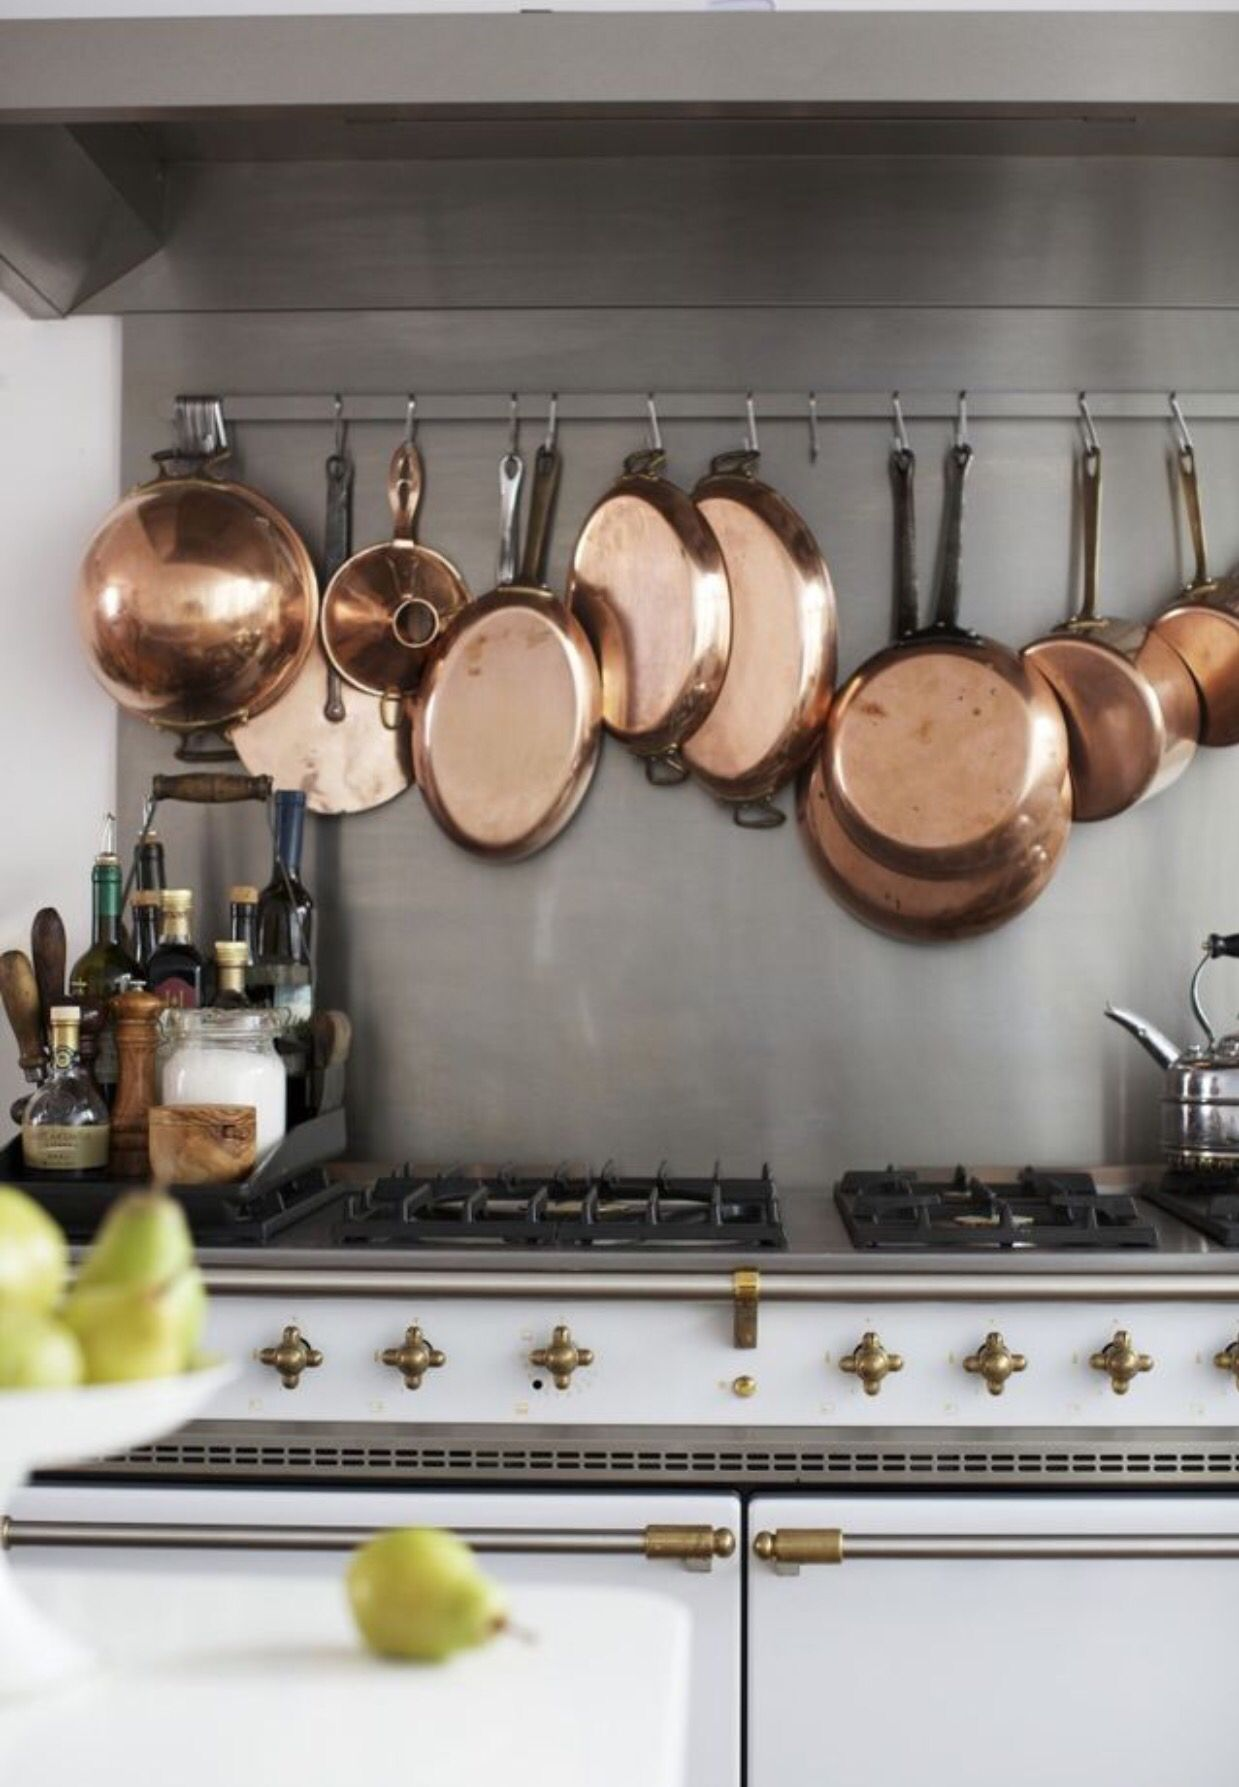 Lacanche Range at The Cooks Atelier